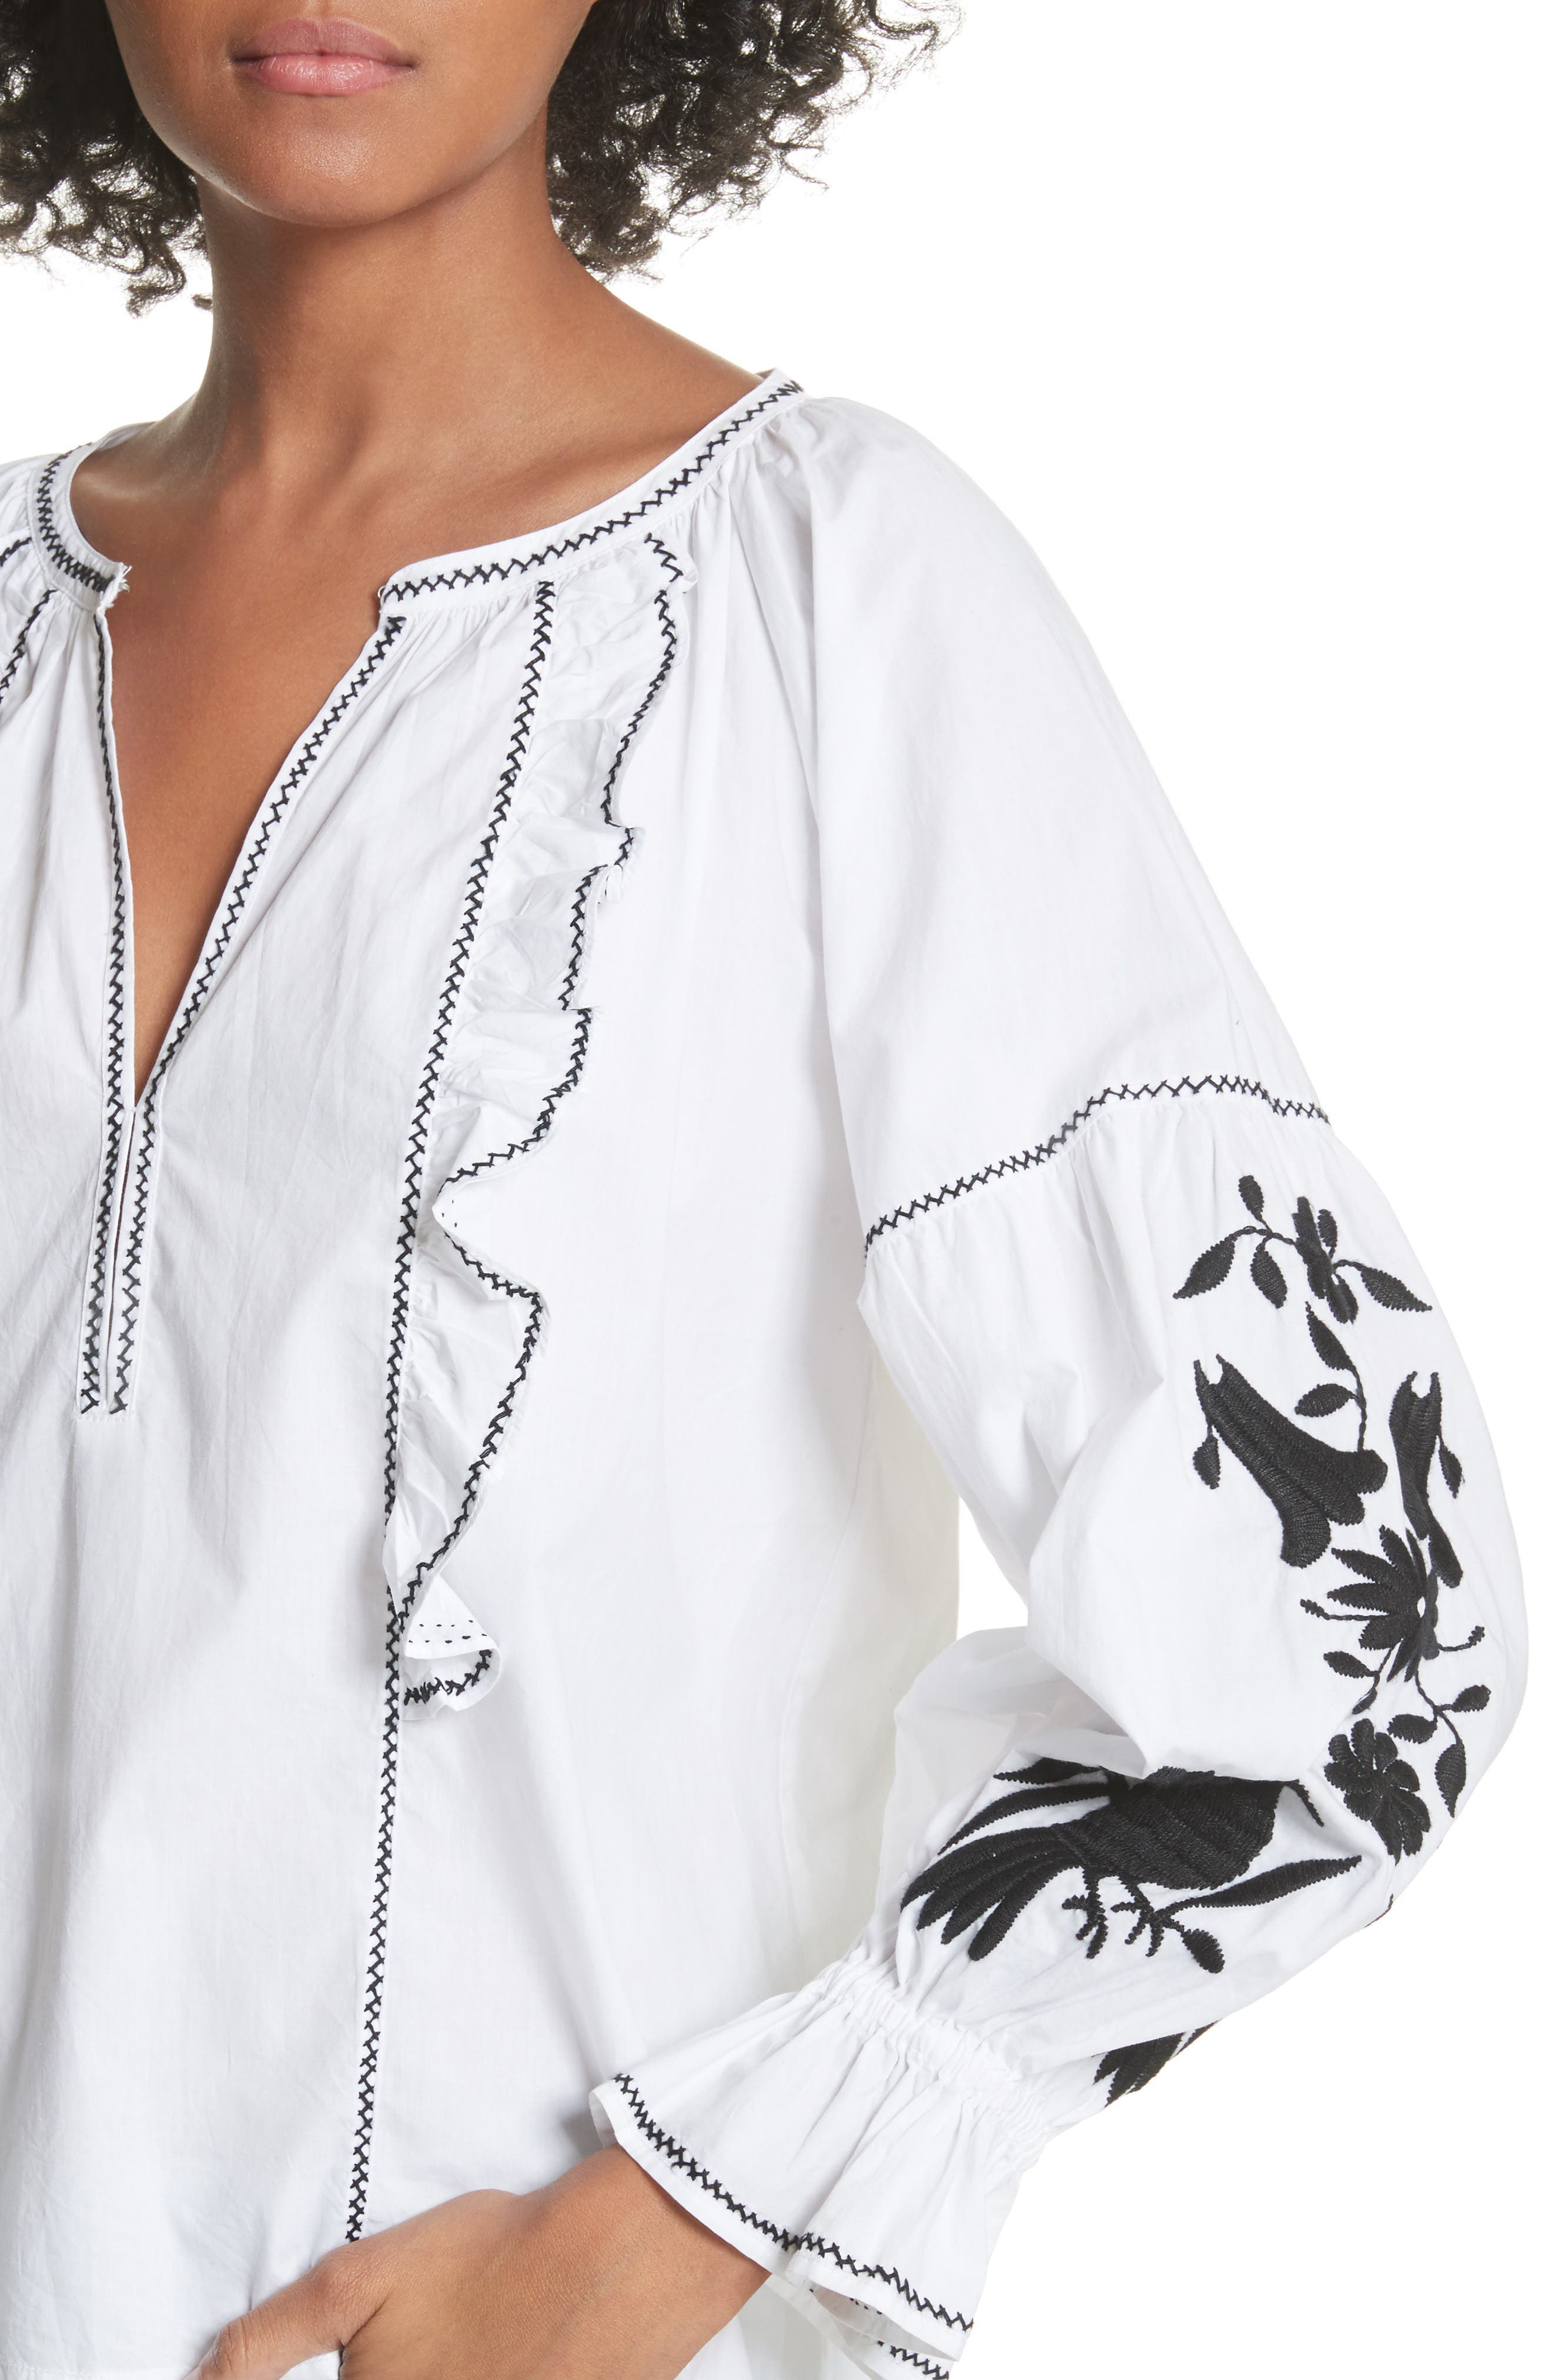 Cleavanta Embroidered Peasant Blouse,                             Alternate thumbnail 4, color,                             Clean White Caviar